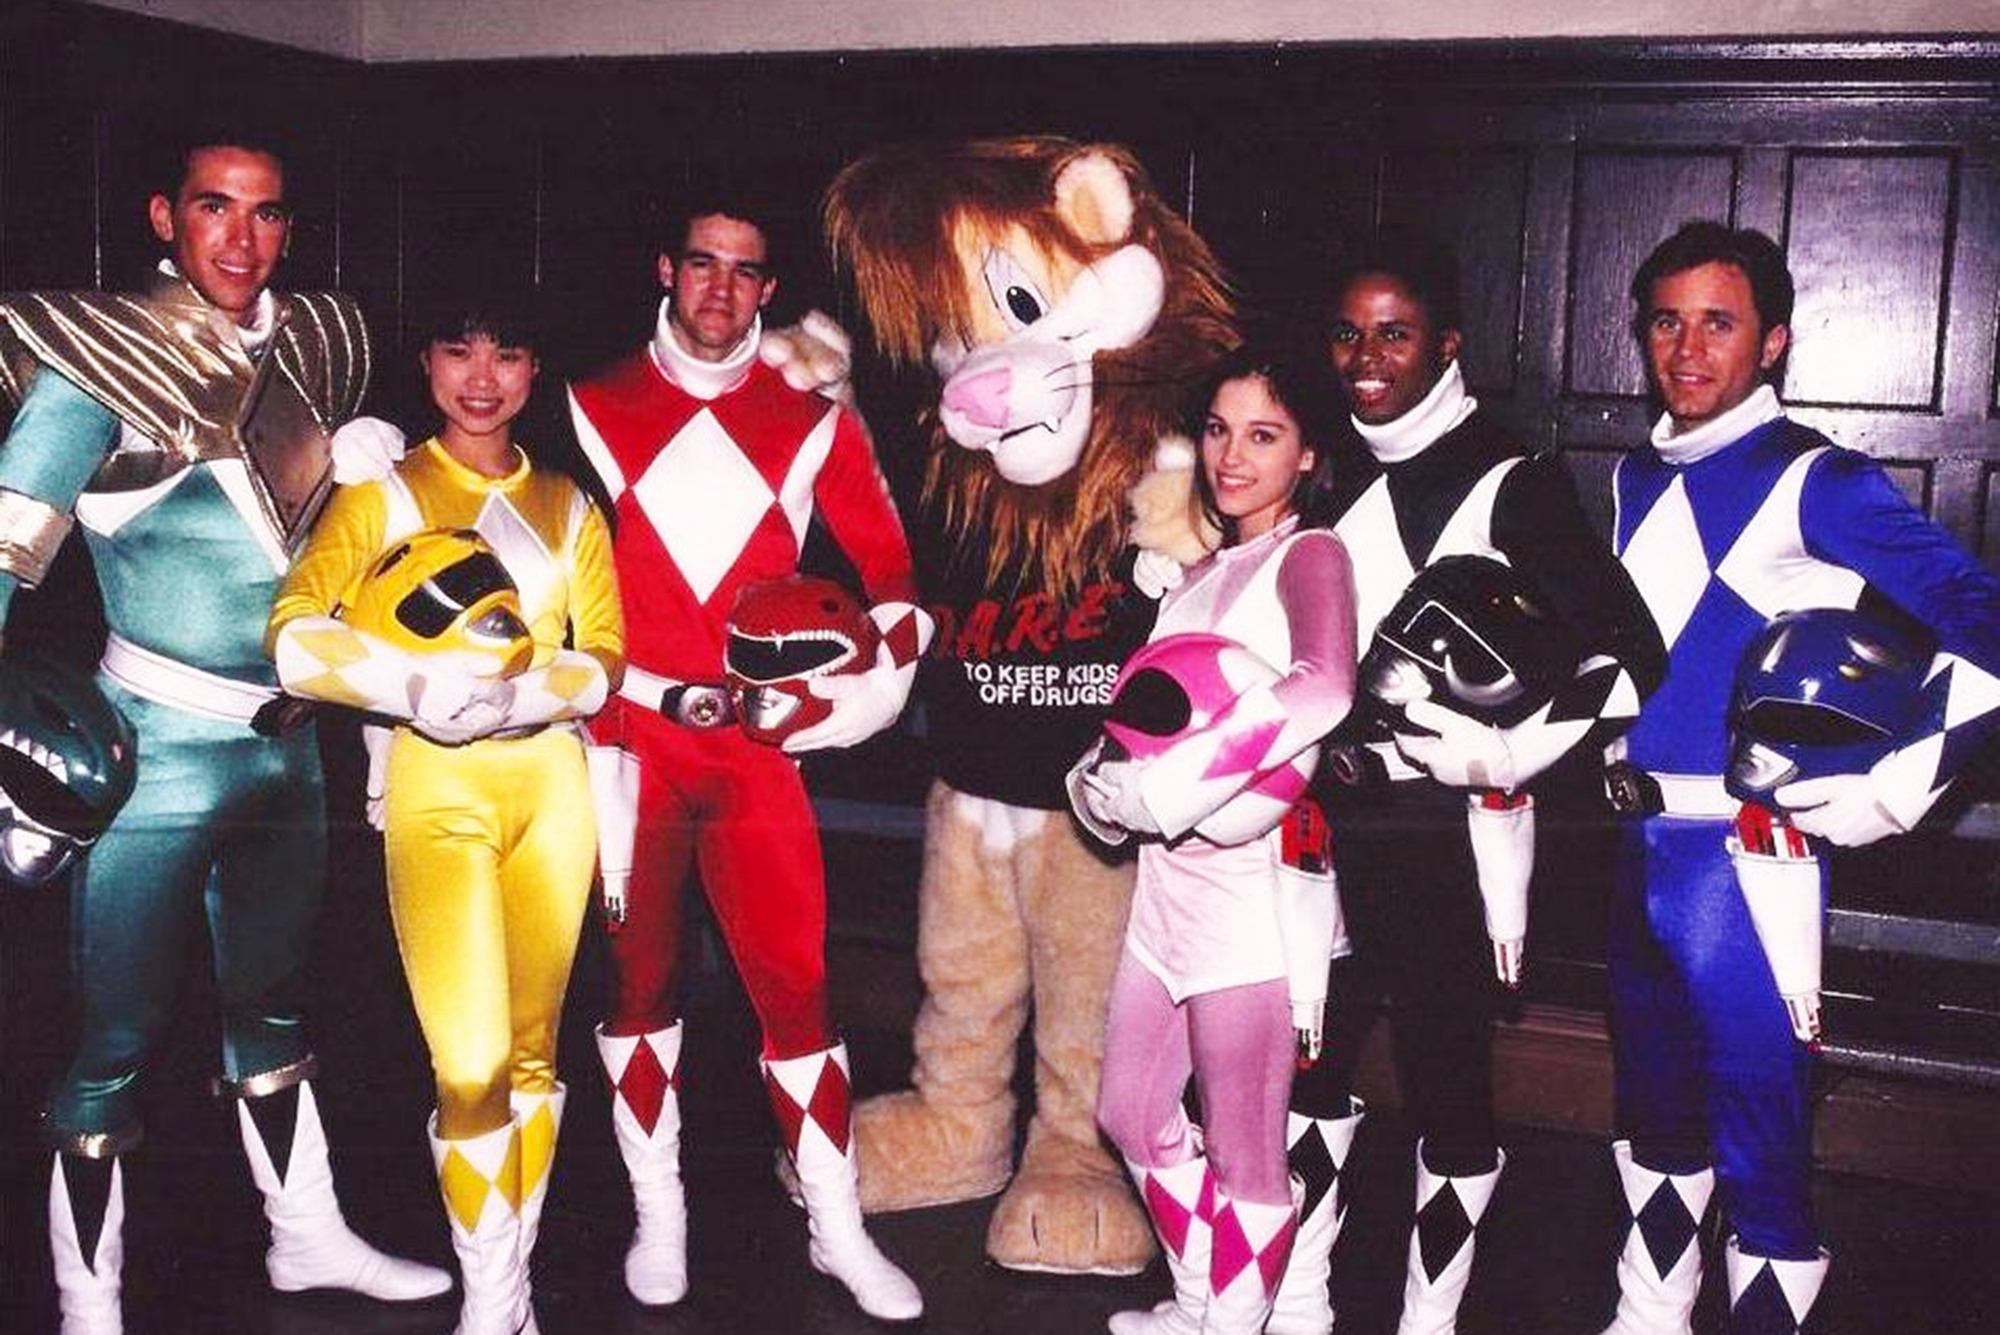 Power Rangers Behind The Scenes Of The Original 1990s Show Time